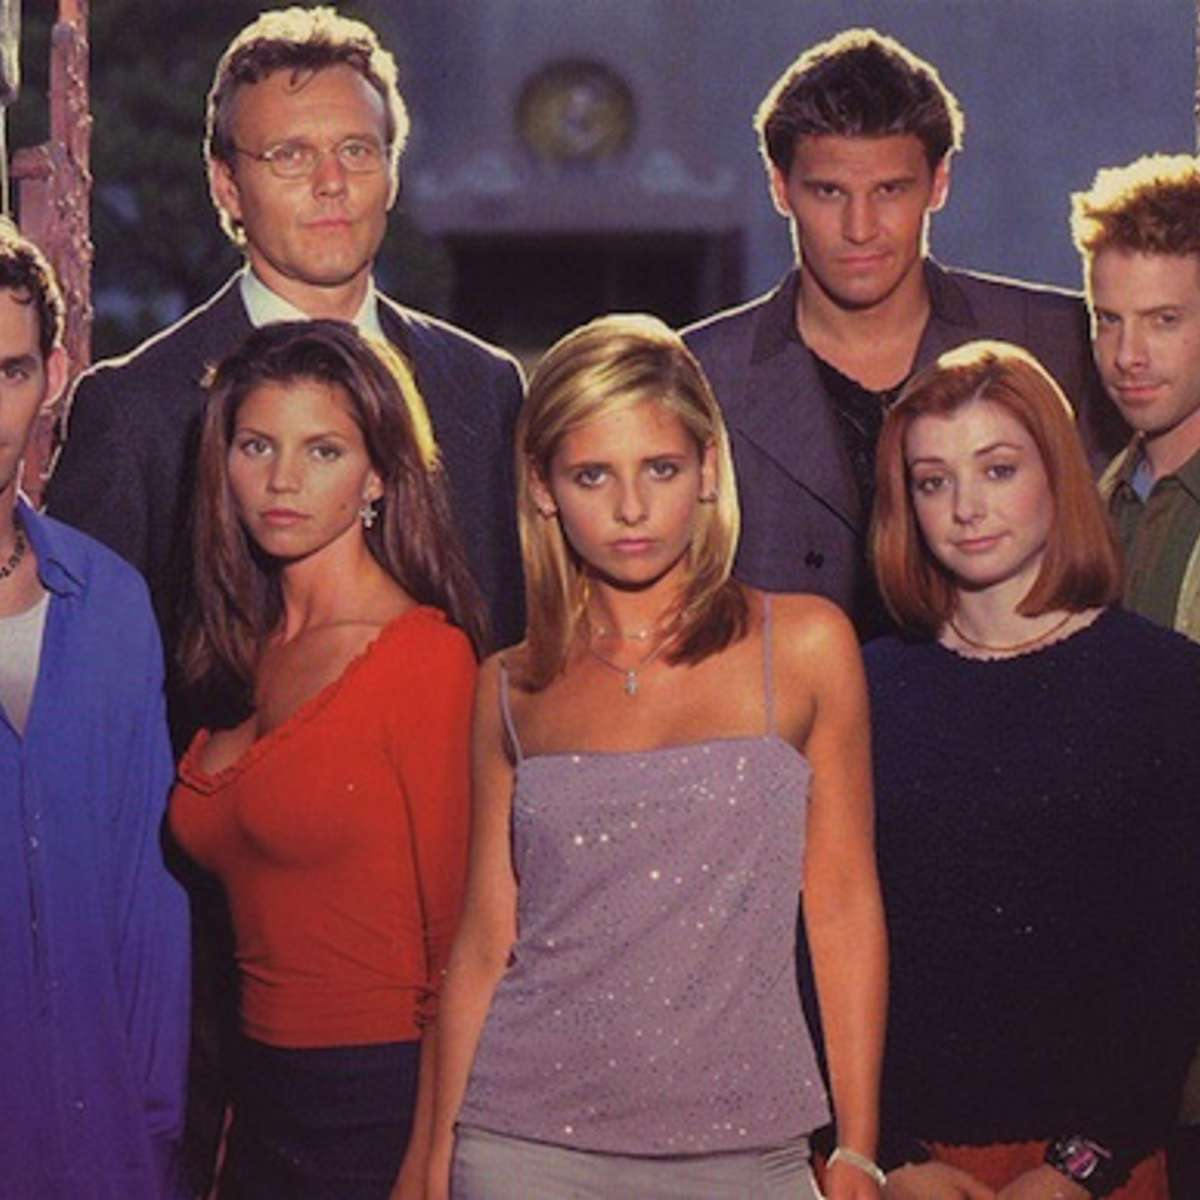 buffy_cast.jpg